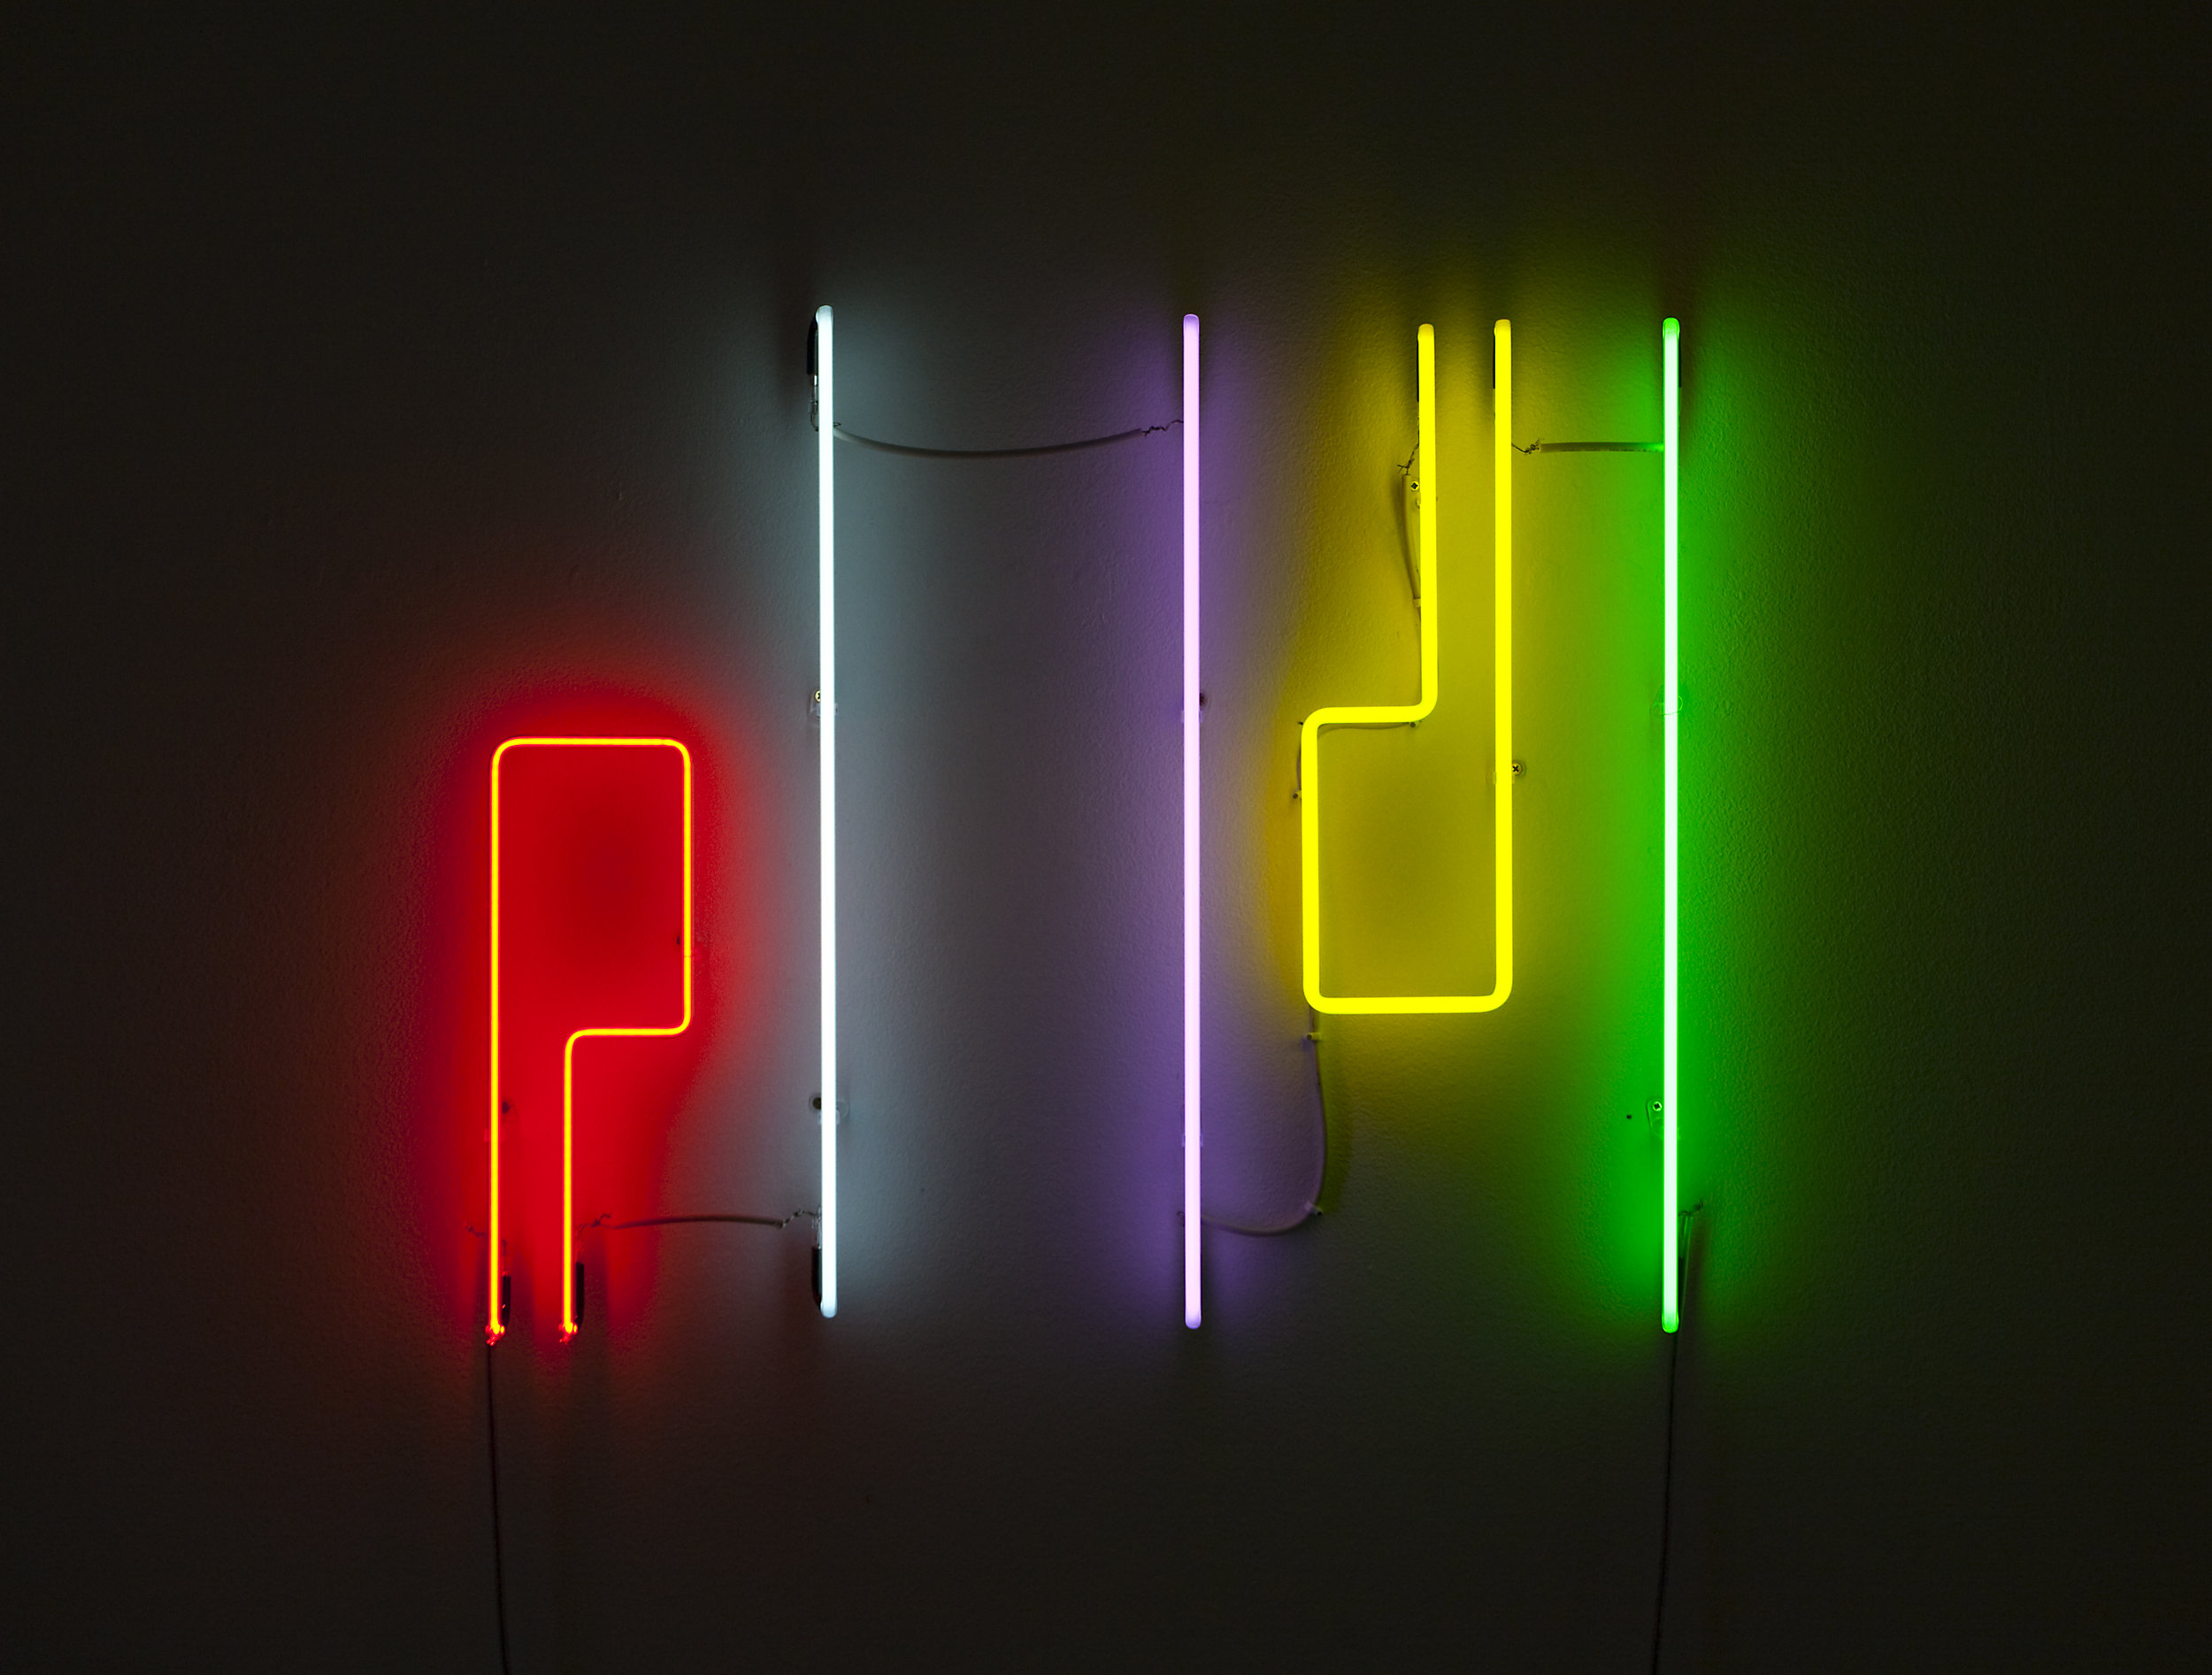 Shezad Dawood   I.A.M. , 2011 wall-mounted neon 25.98 x 29.92 inches 66 x 76 cm Edition 3 of 3